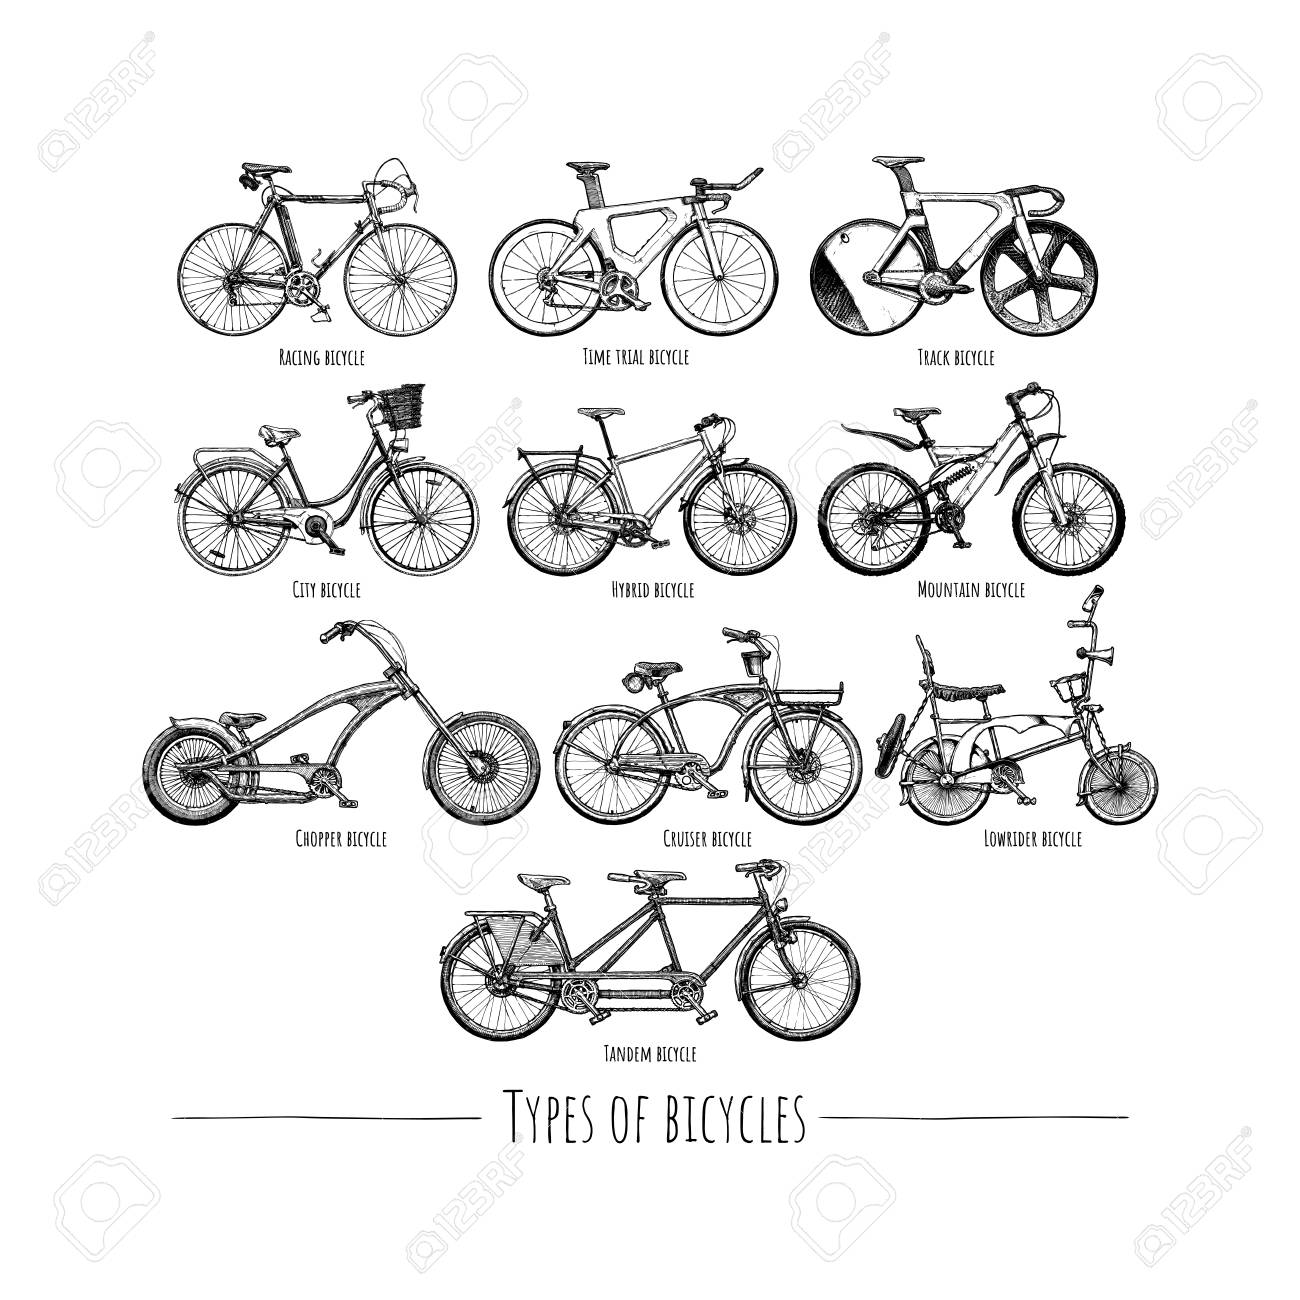 Types Of Bicycles >> Types Of Bicycles Vector Hand Drawn Illustration Of Different